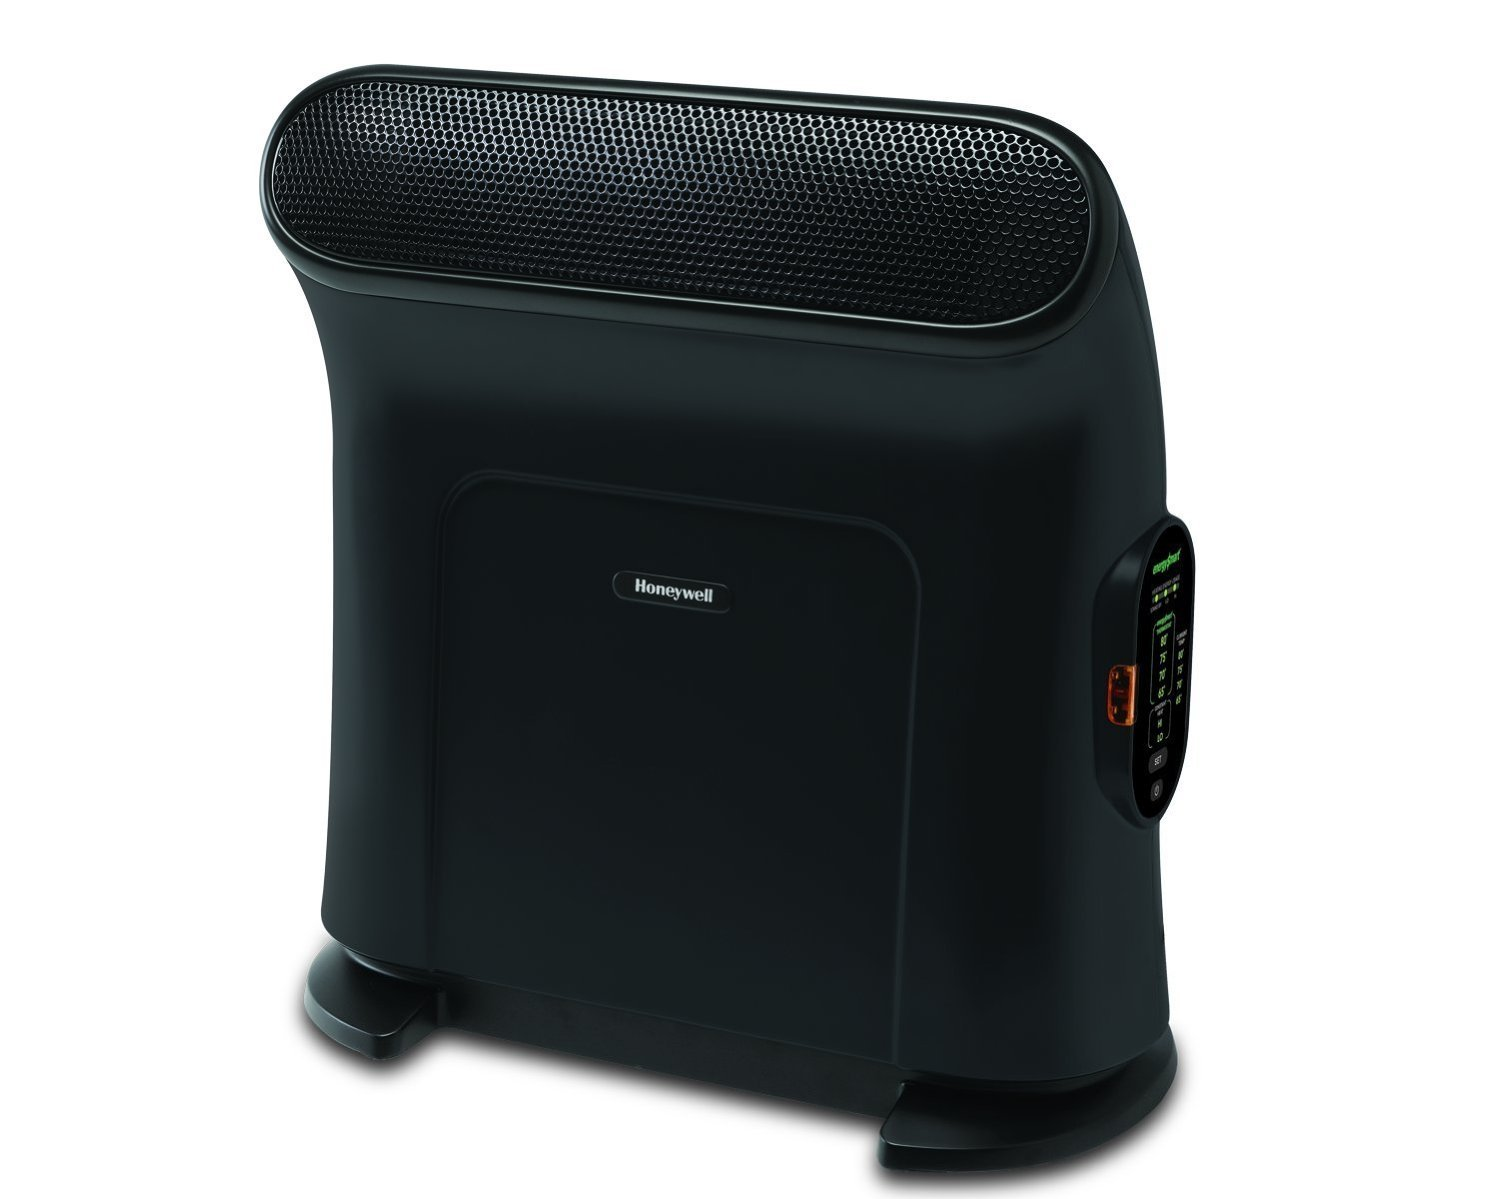 Honeywell HZ-860 EnergySmart Thermawave Ceramic Heater